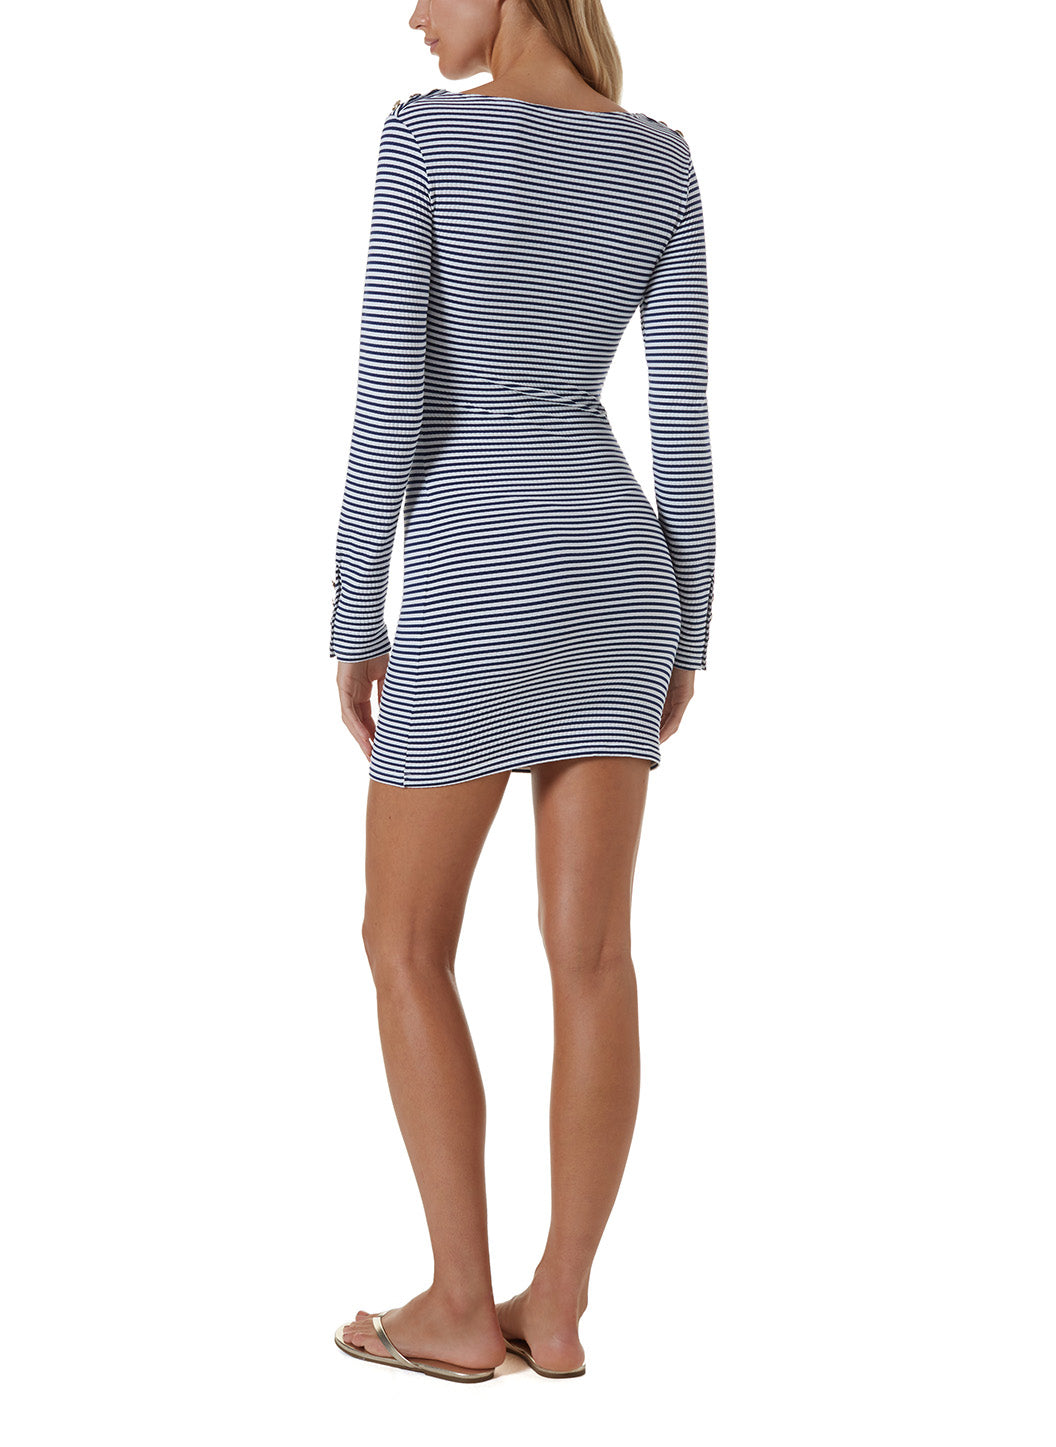 agata nautical navy short dress